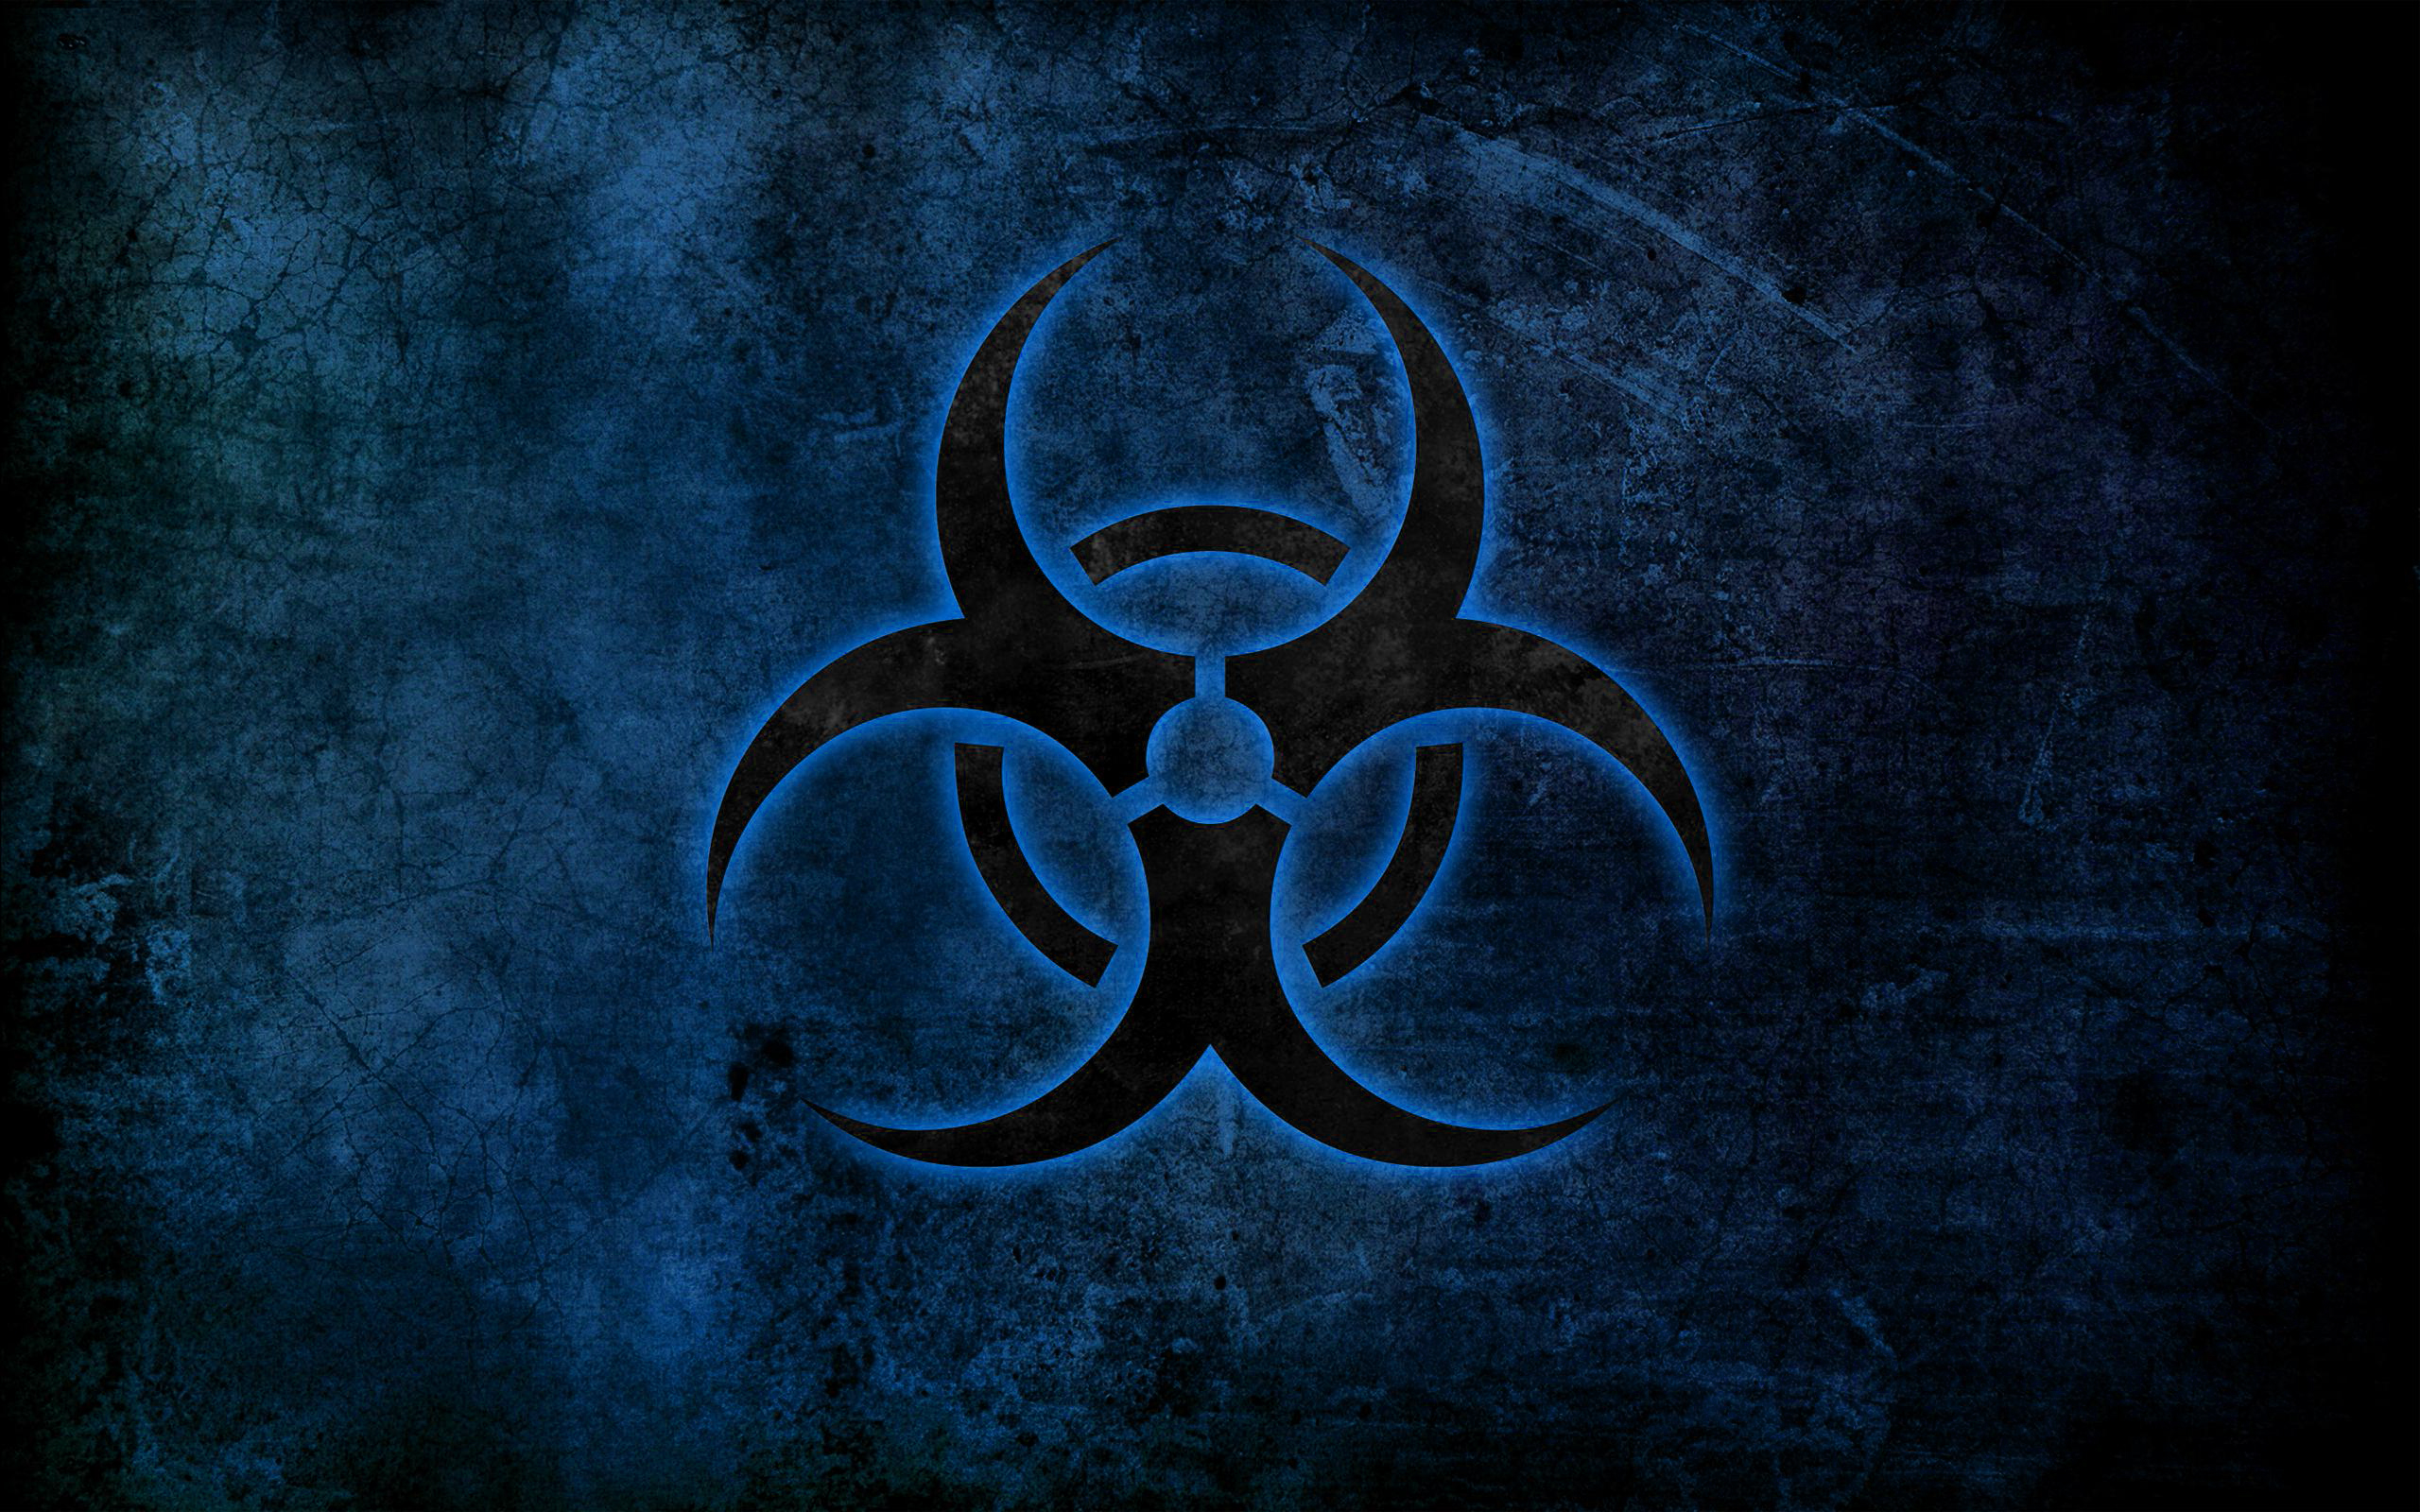 Back   Pictures for biohazard symbol wallpaper hd 2560x1600